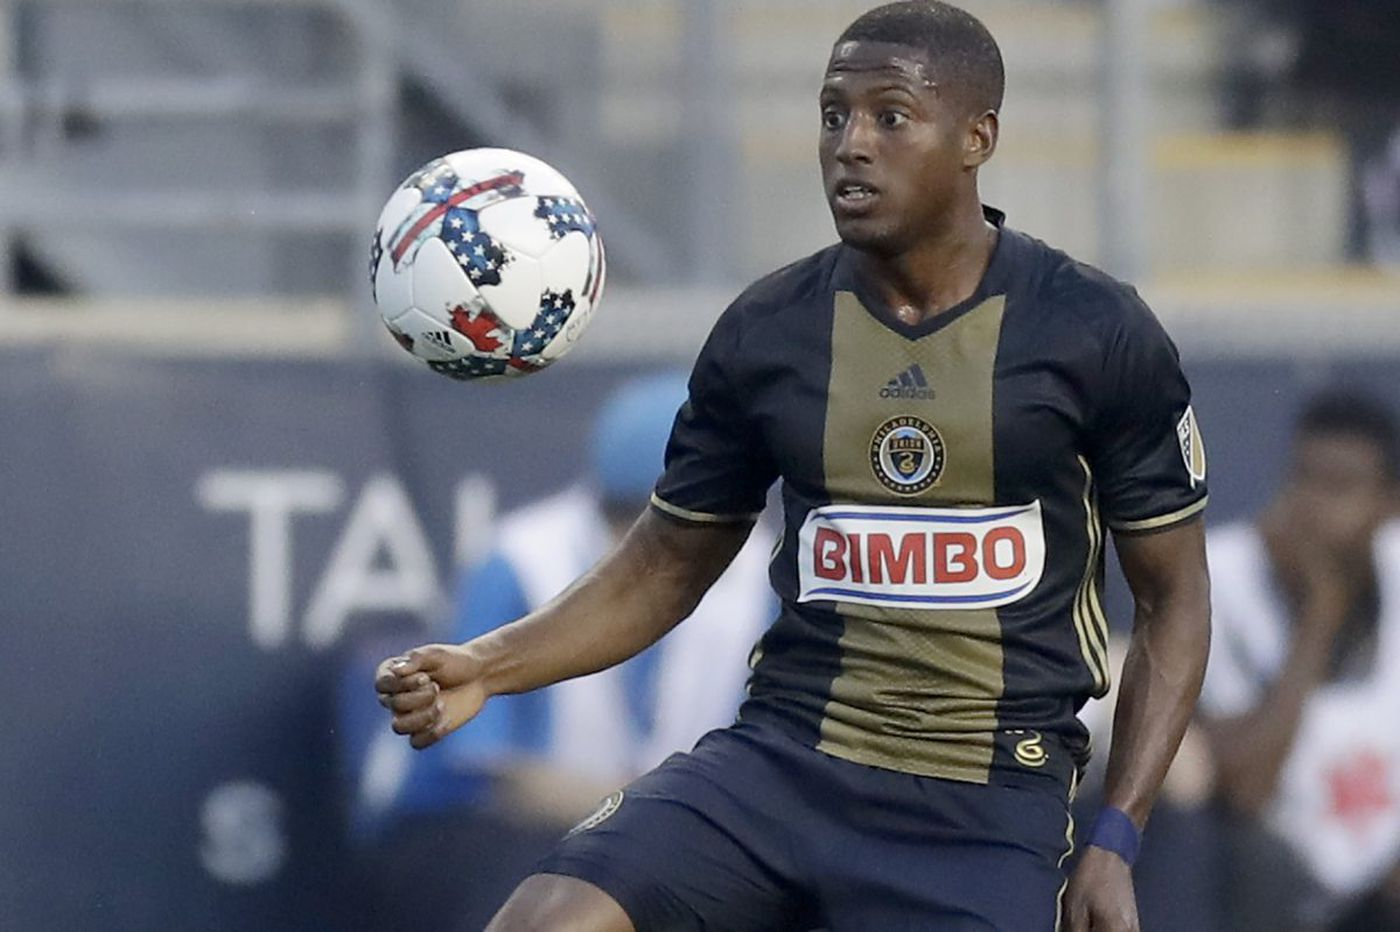 Union's Fafa Picault 'ready to get to it' as three-game suspension finally ends